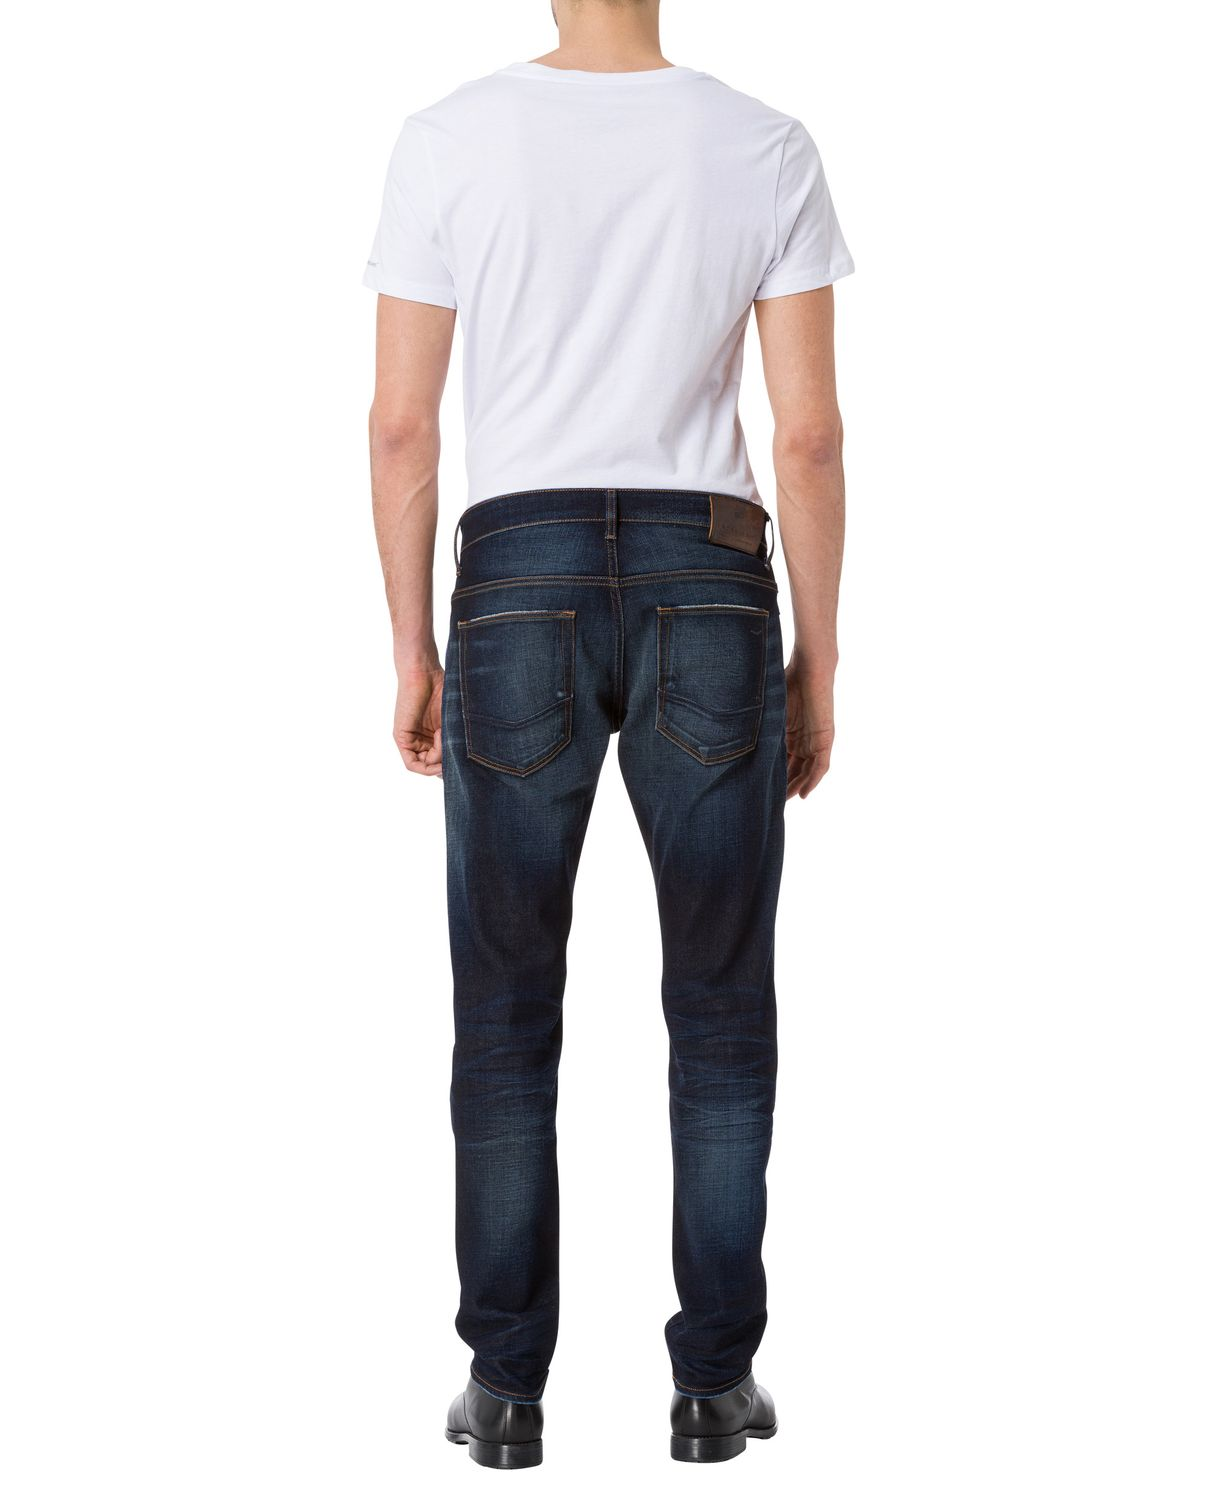 cross-jeans-herren-jeans-939-tapered-fit-blau-deep-blue, 69.95 EUR @ jeans